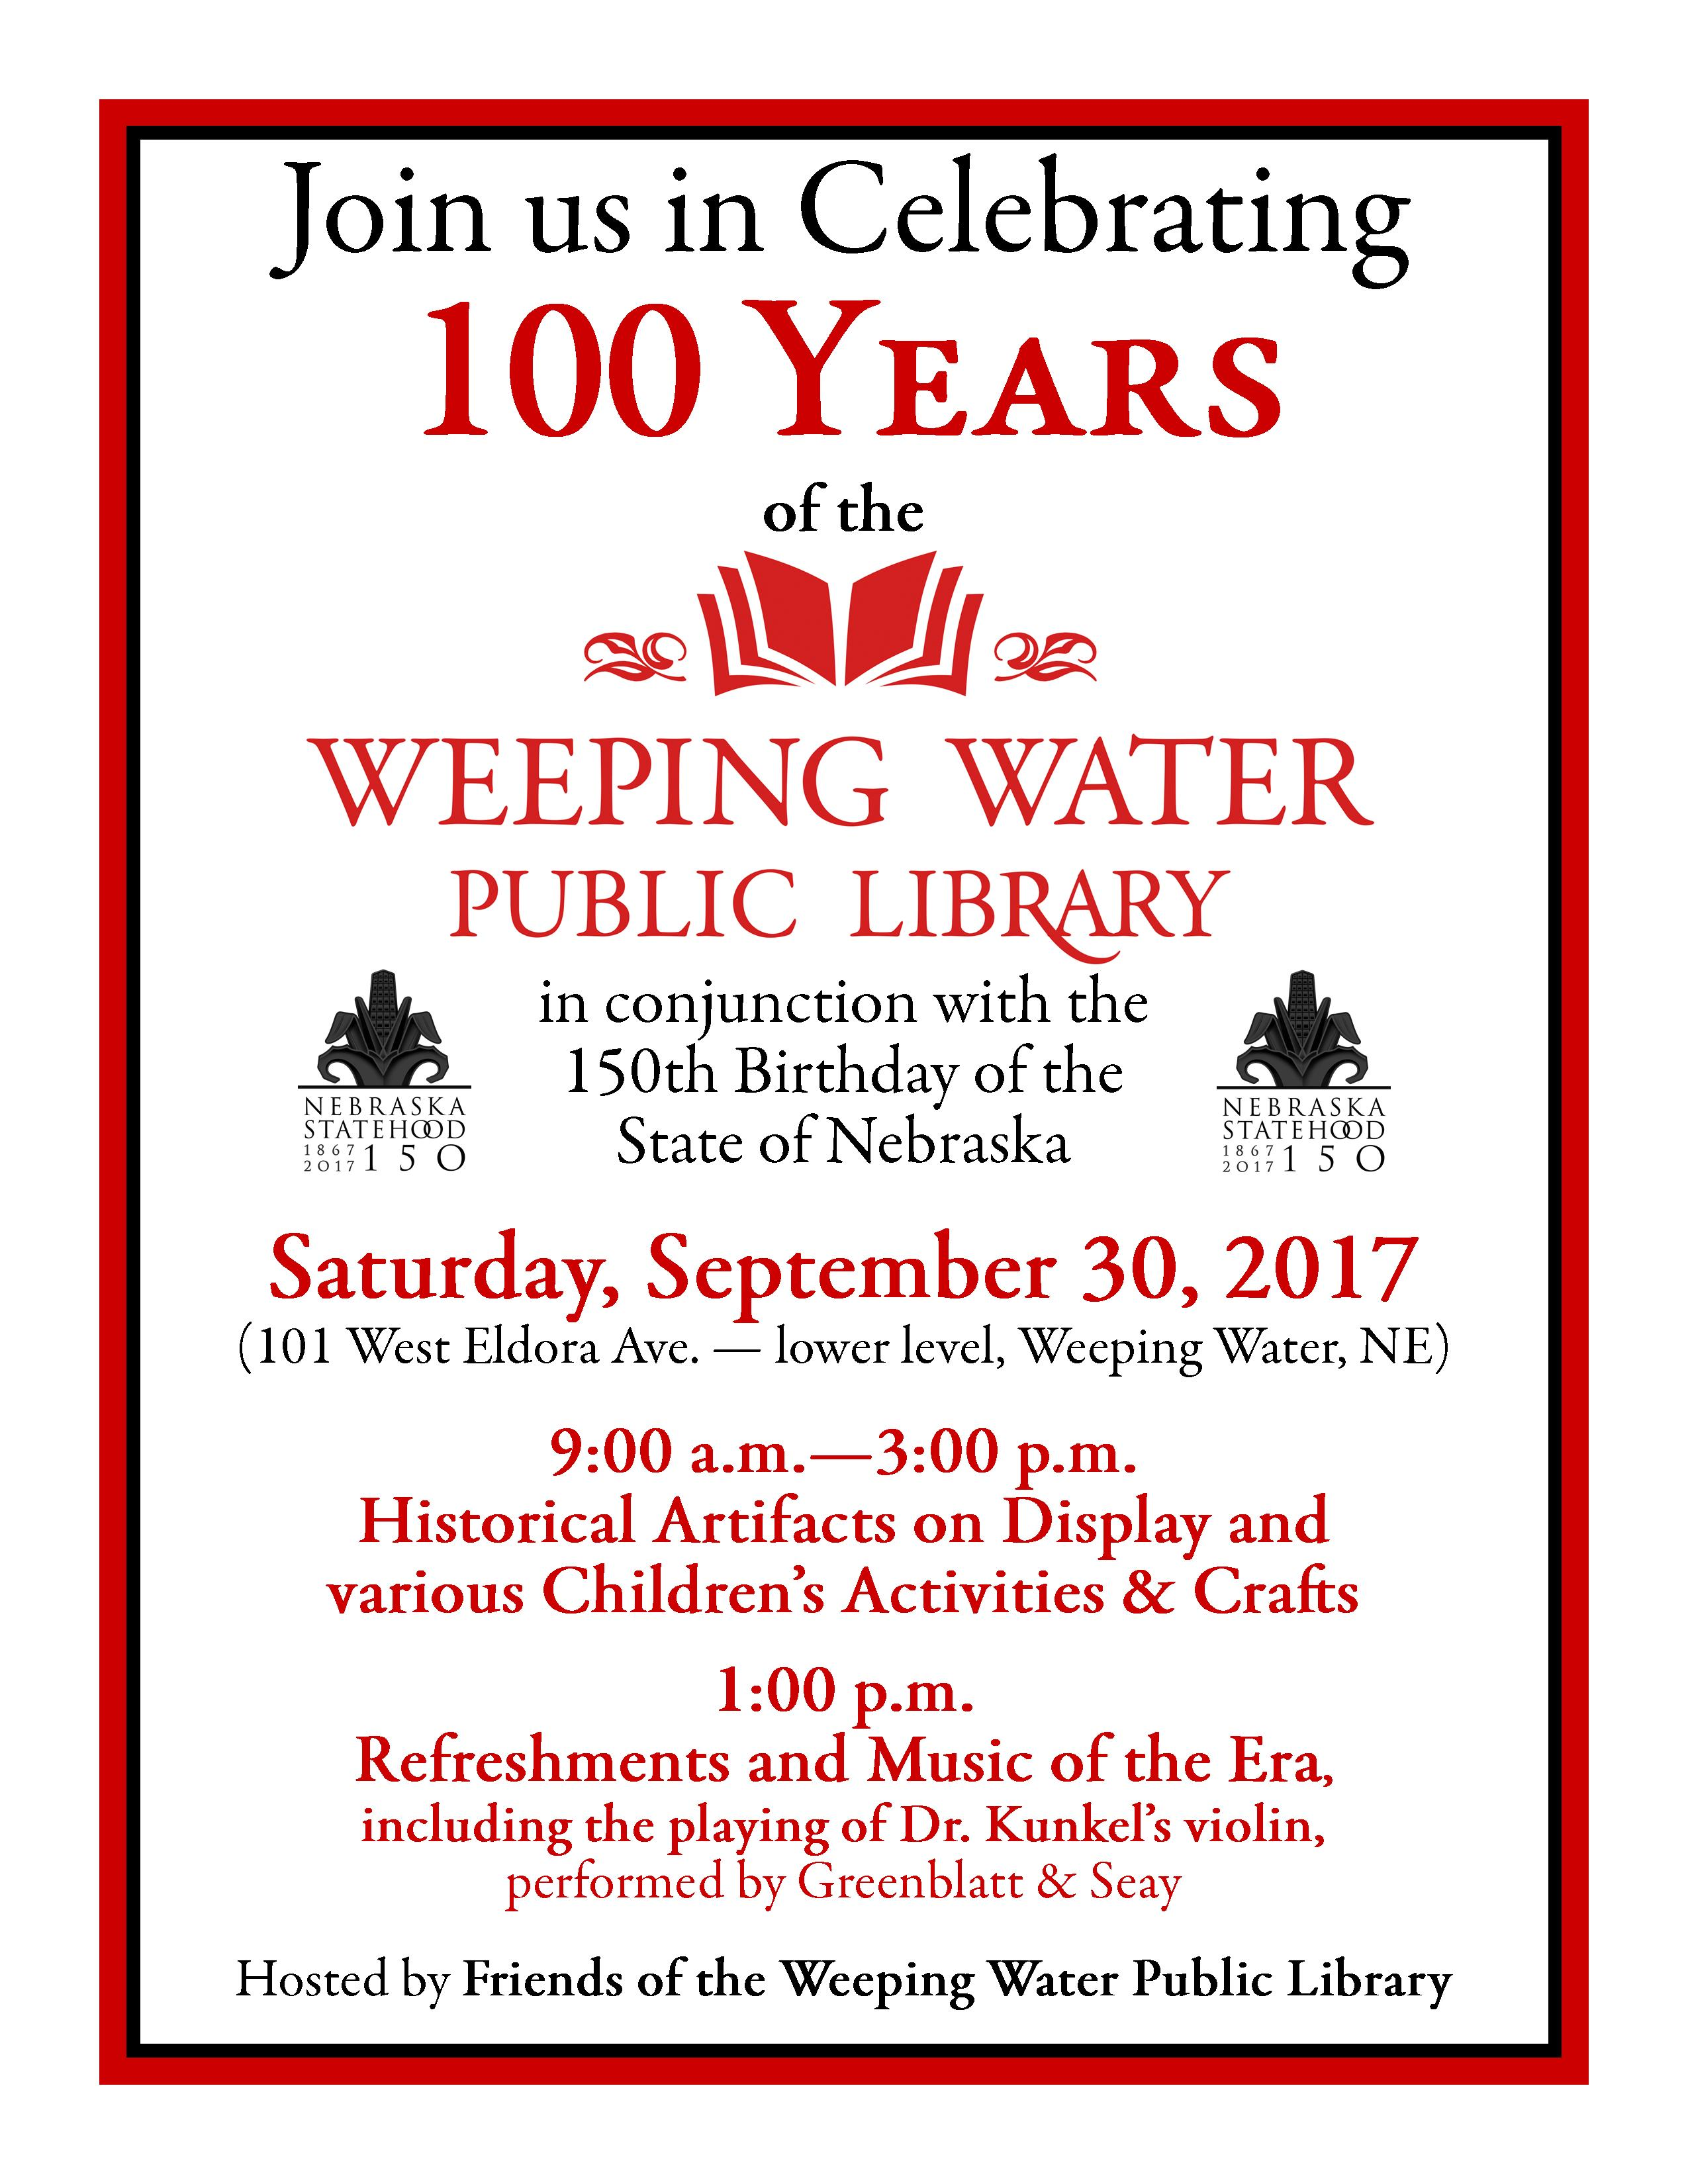 FWWPL Ad Poster for 100th1822